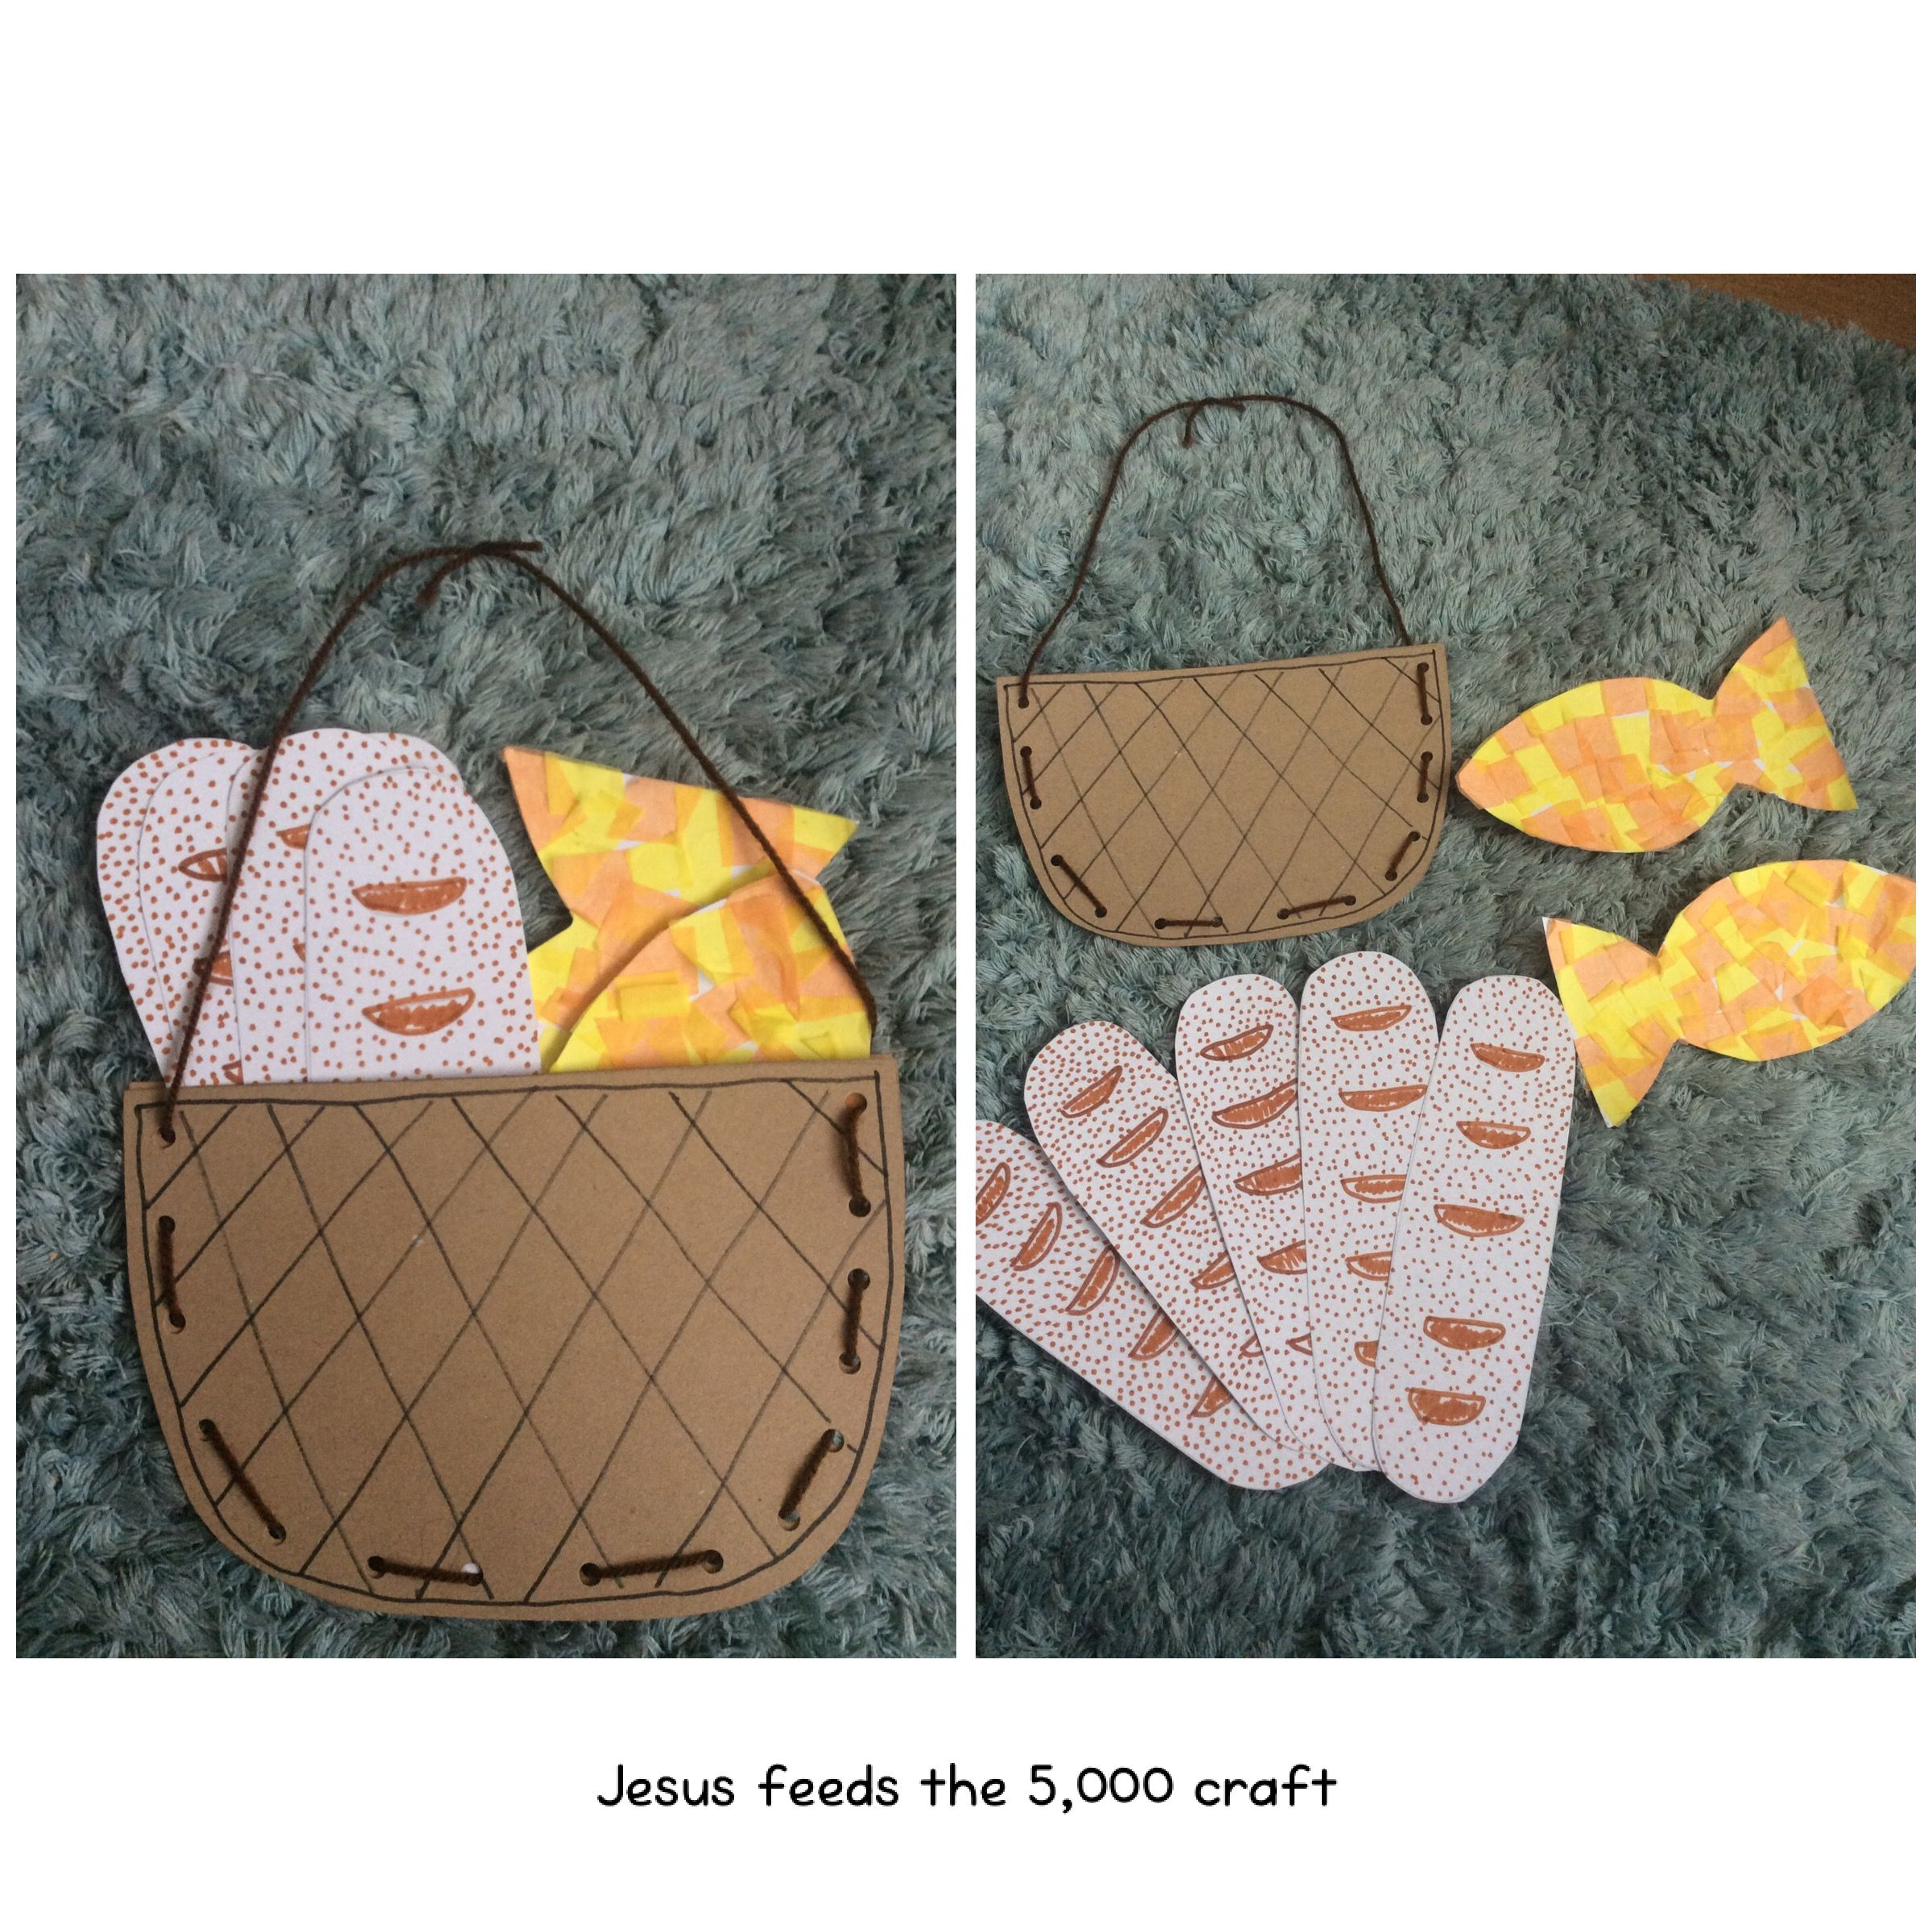 jesus feeds the 5000 craft perfect for kids age 3 to 9